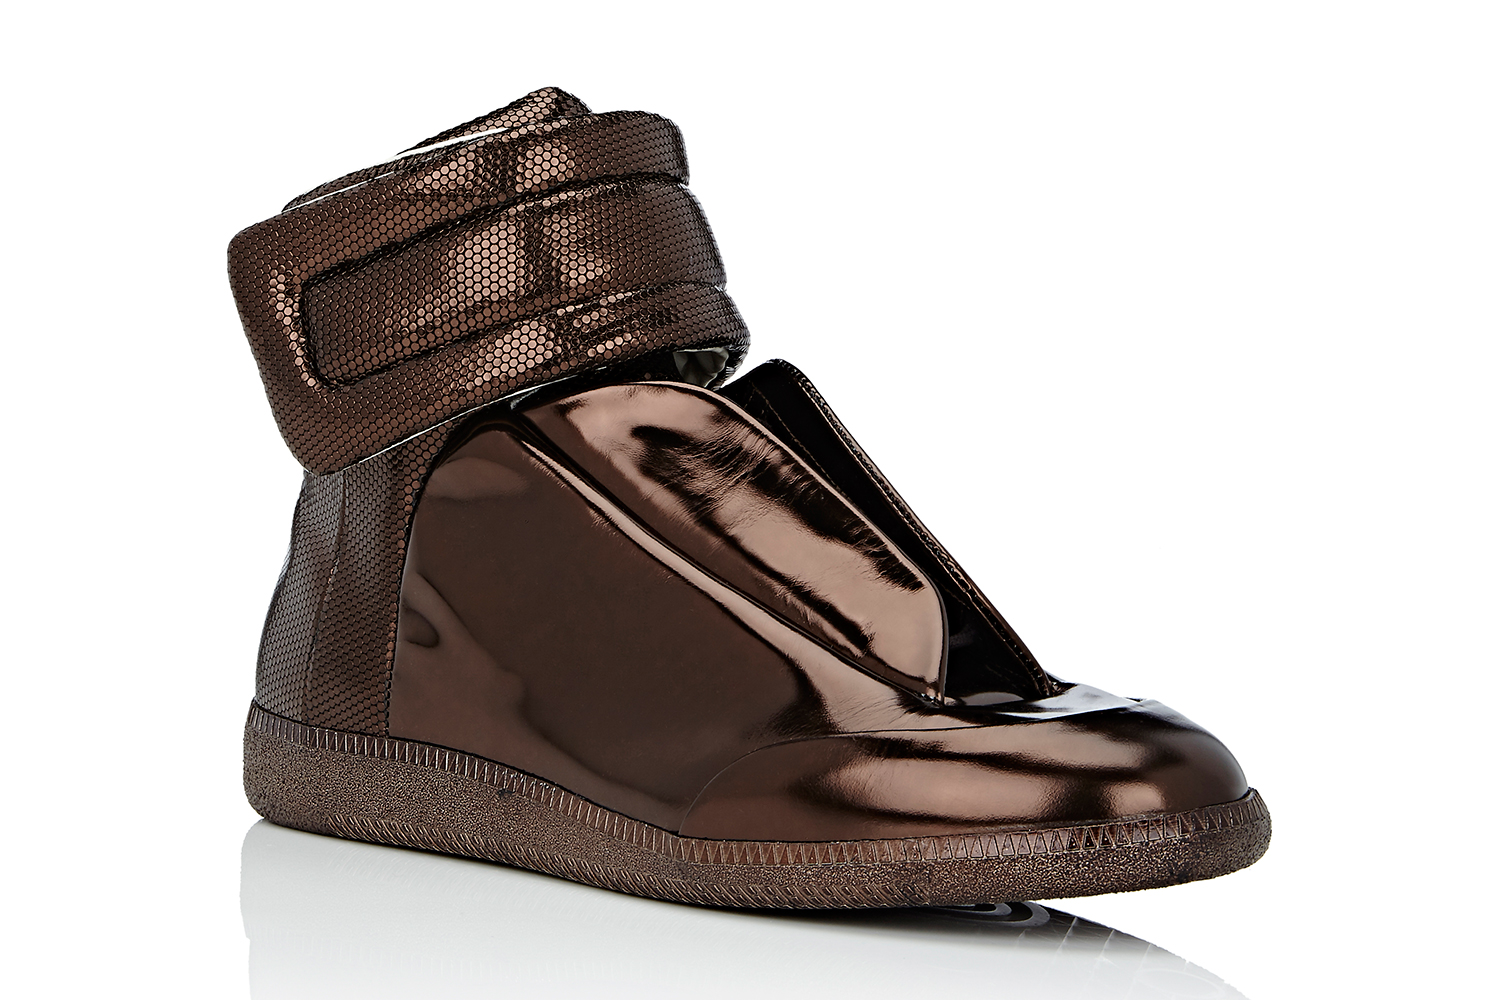 maison-margiela-barneys-metallic-future-high-top-sneakers-05